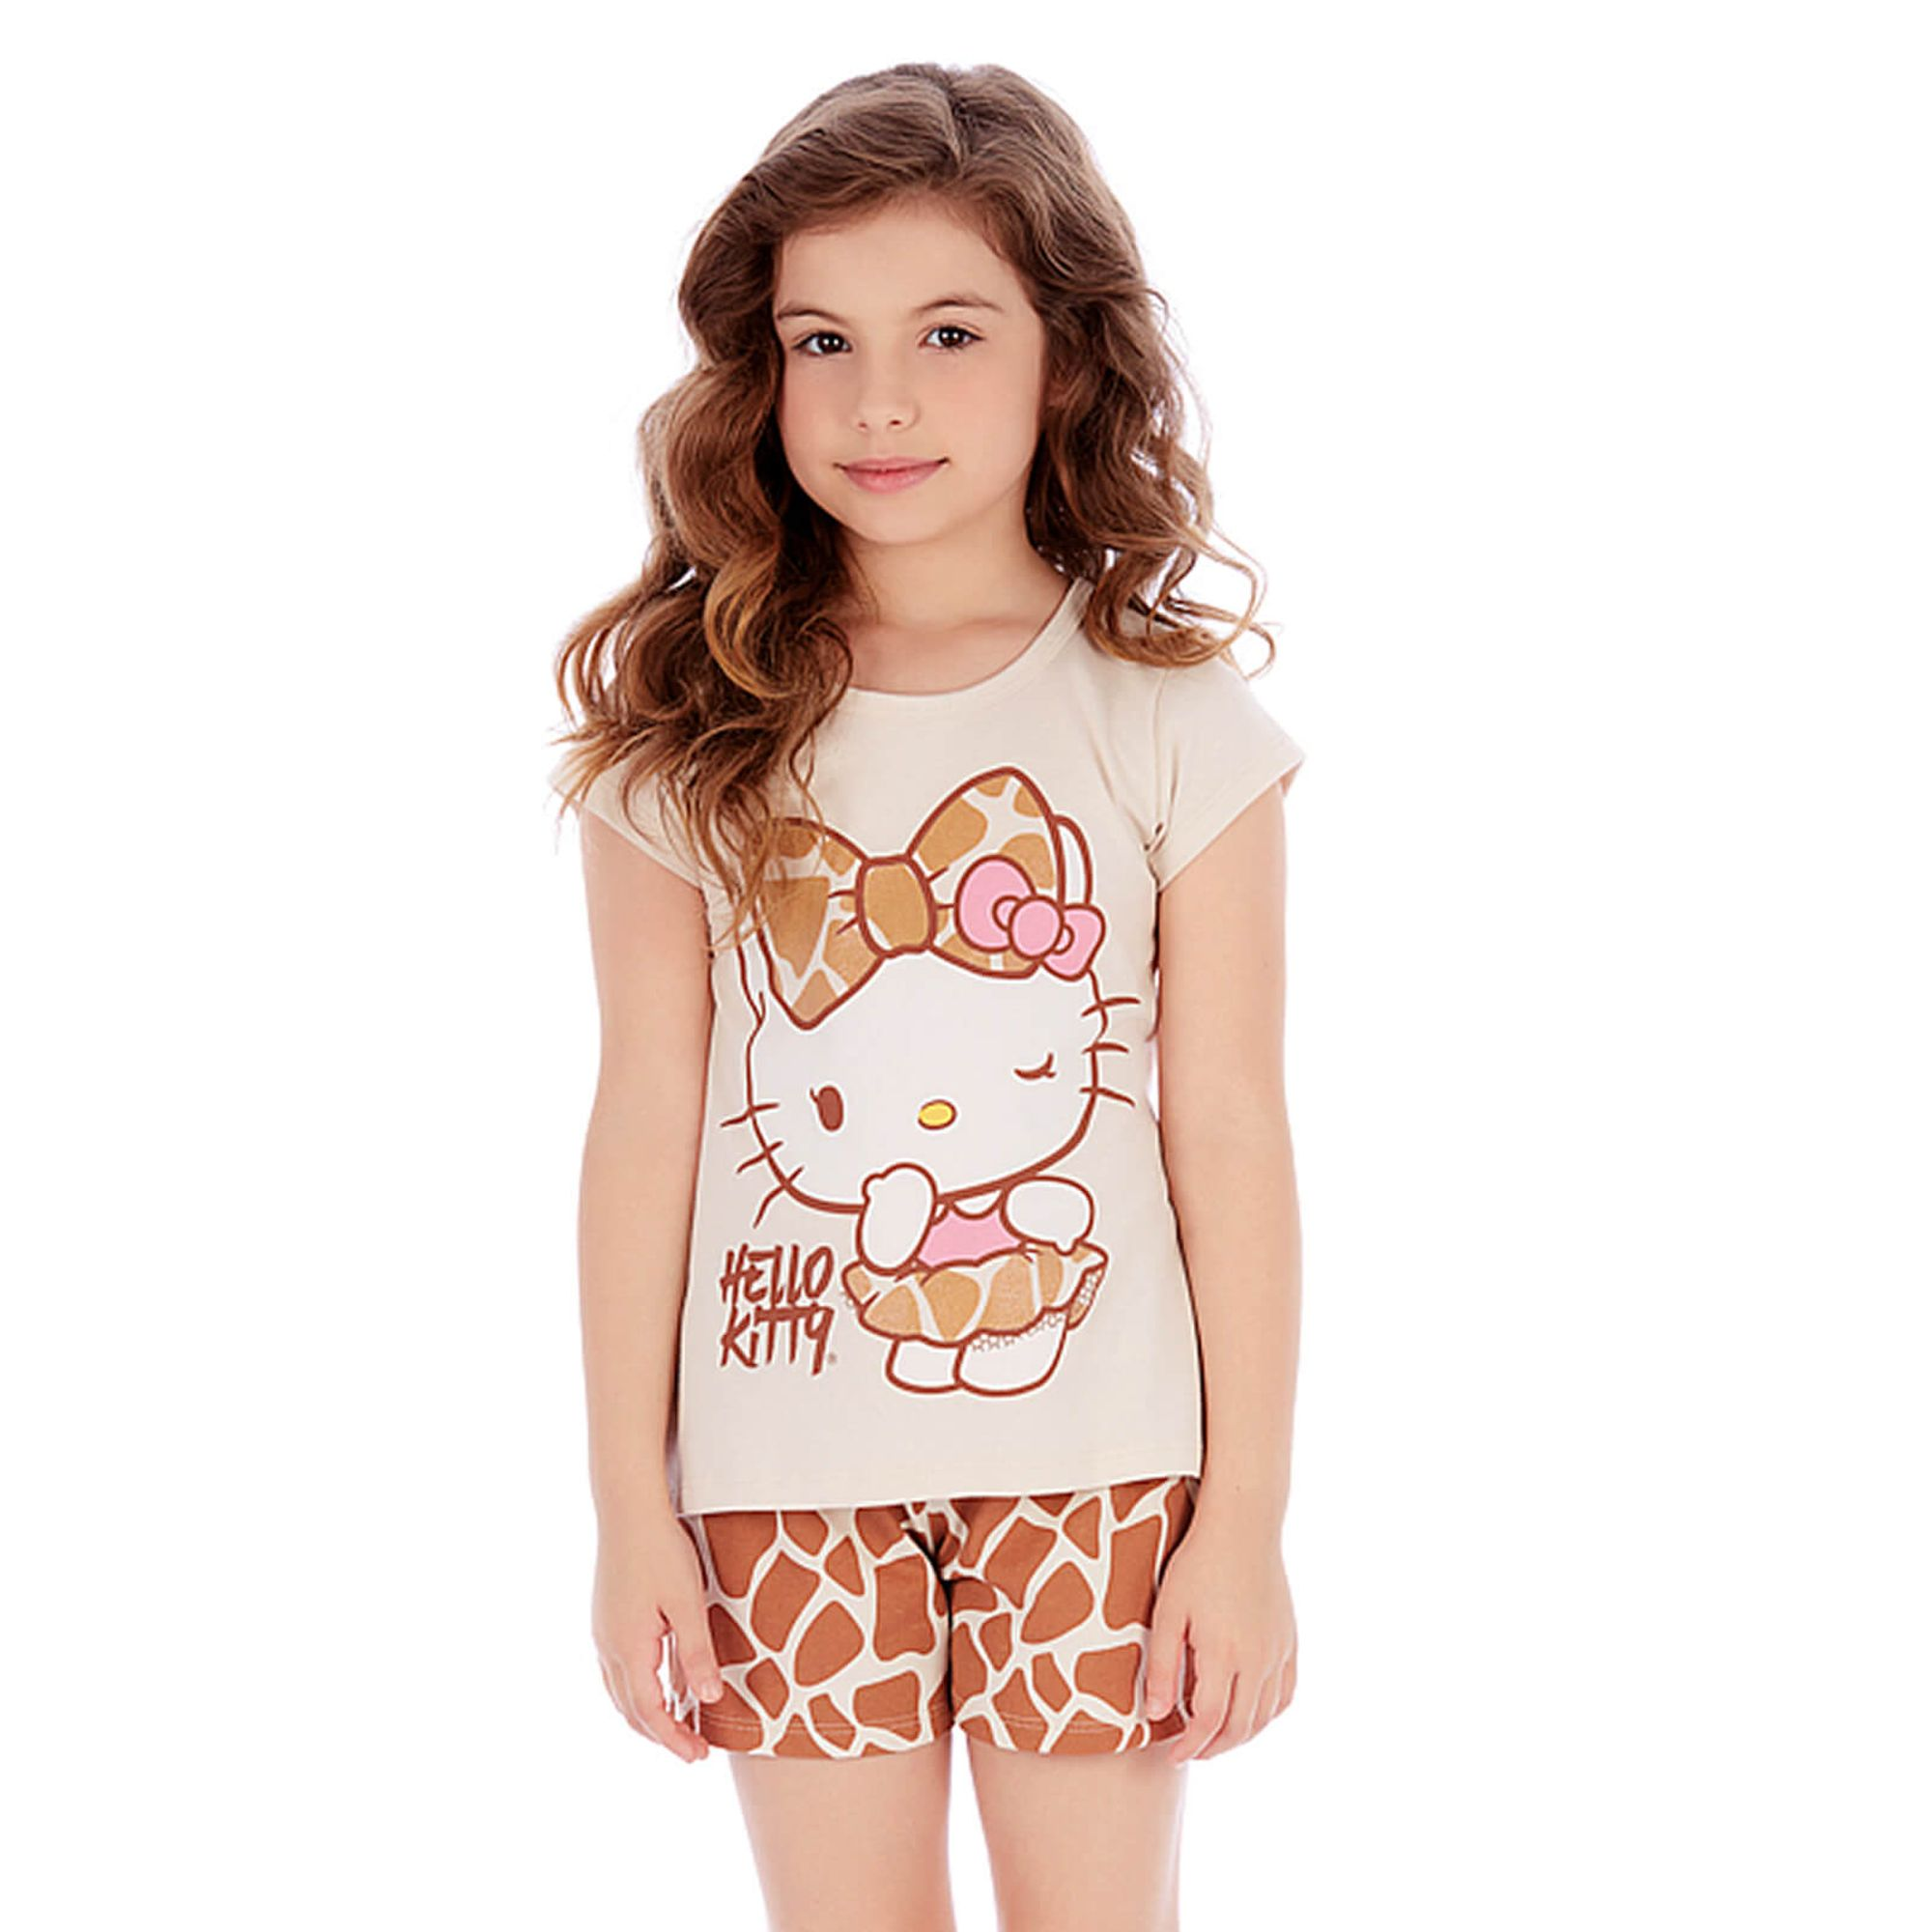 pijama-curto-infantil-hello-kitty-estampa-zebra